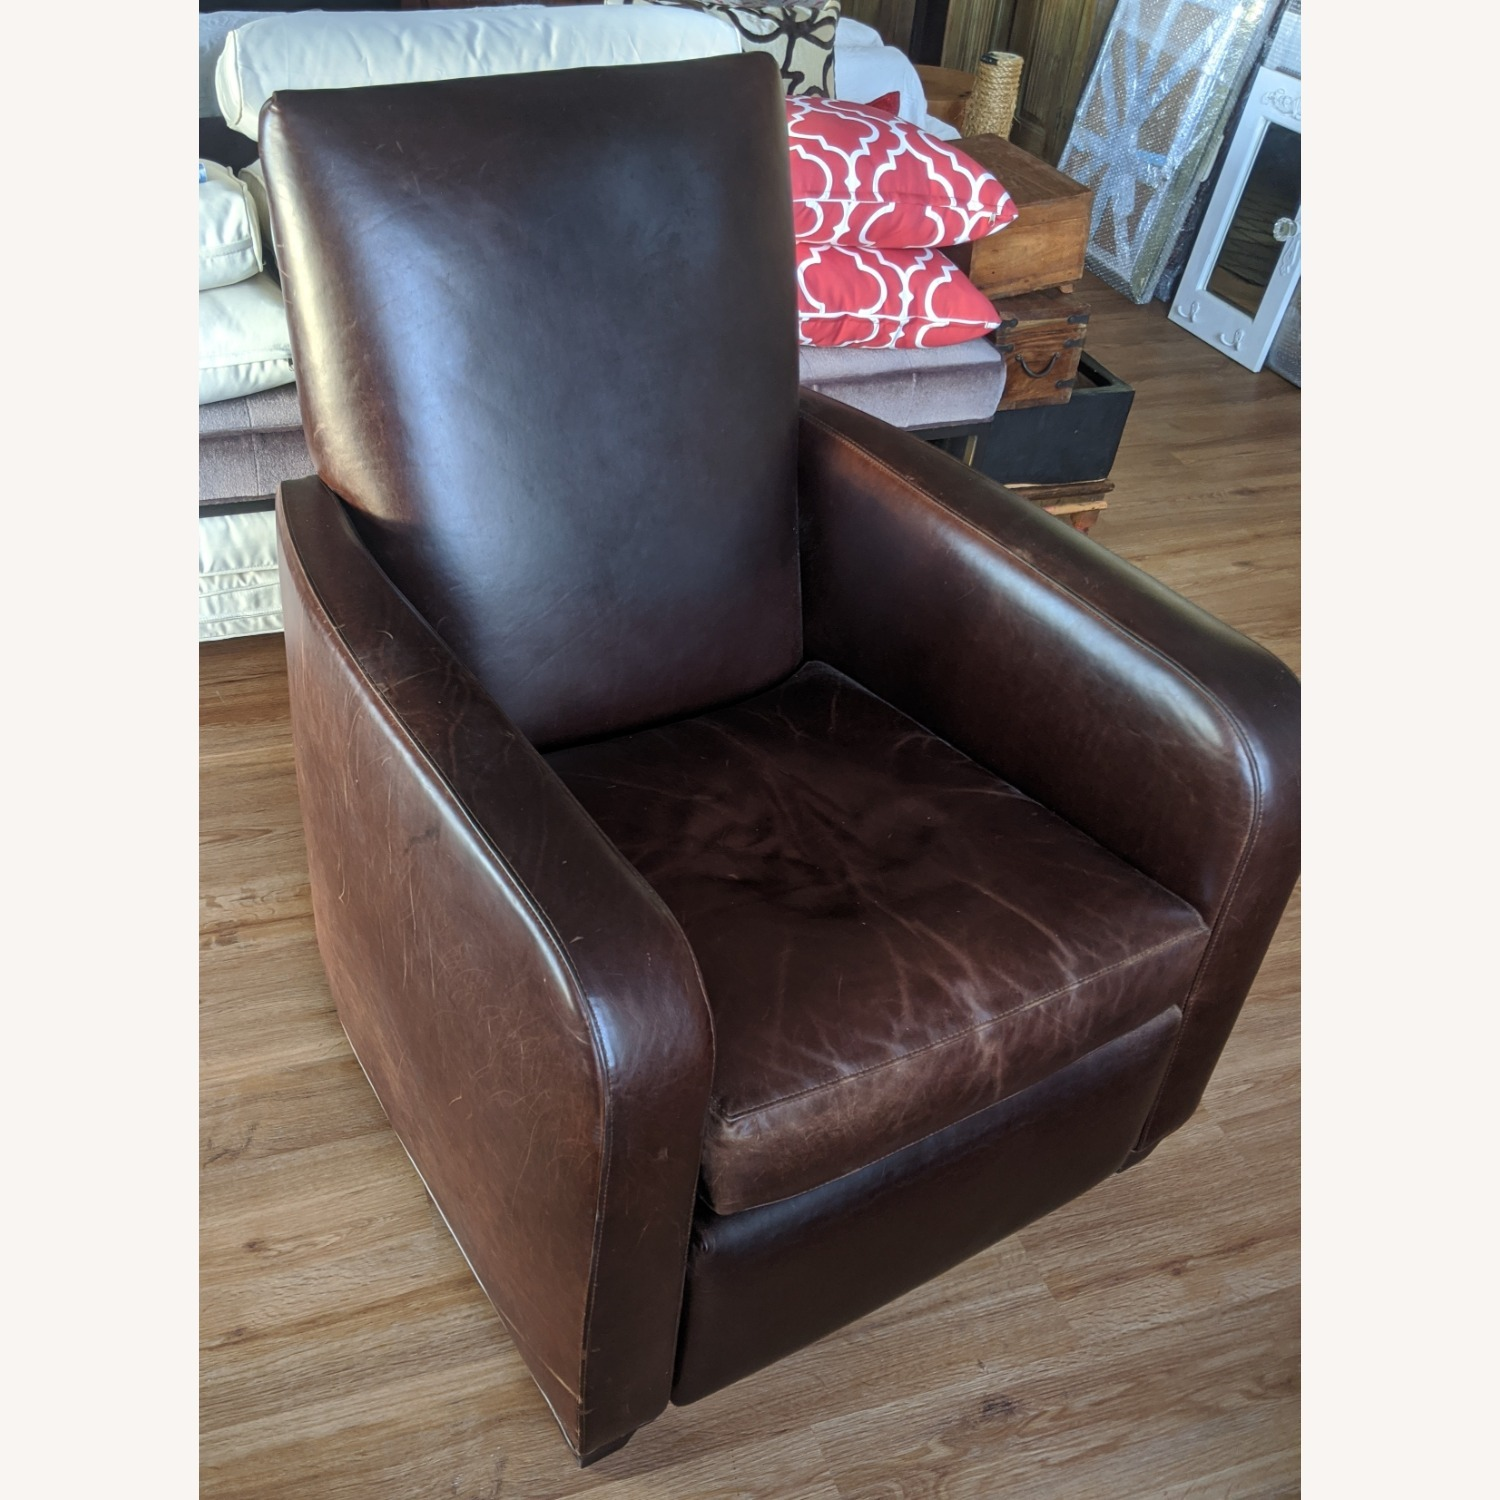 Crate & Barrel Leather Recliner - image-1